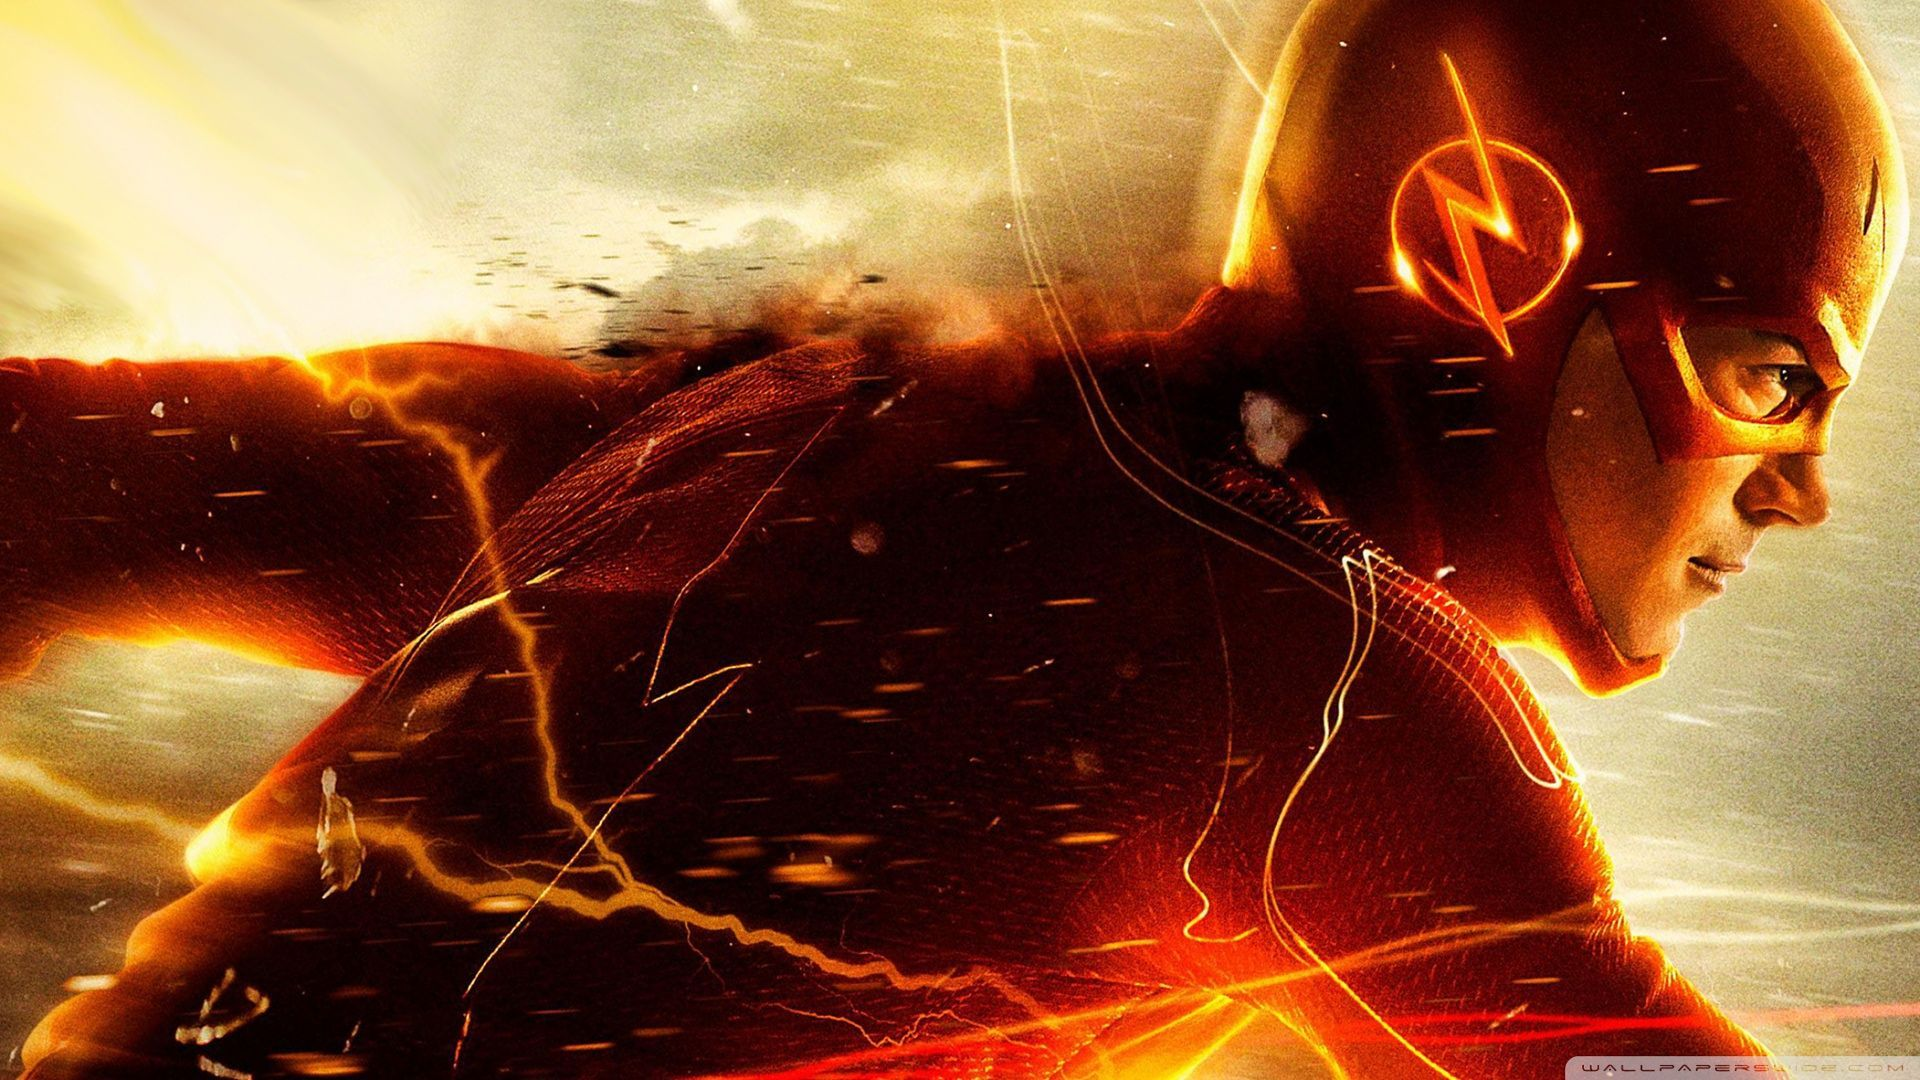 15 Things Wrong With The CW's The Flash